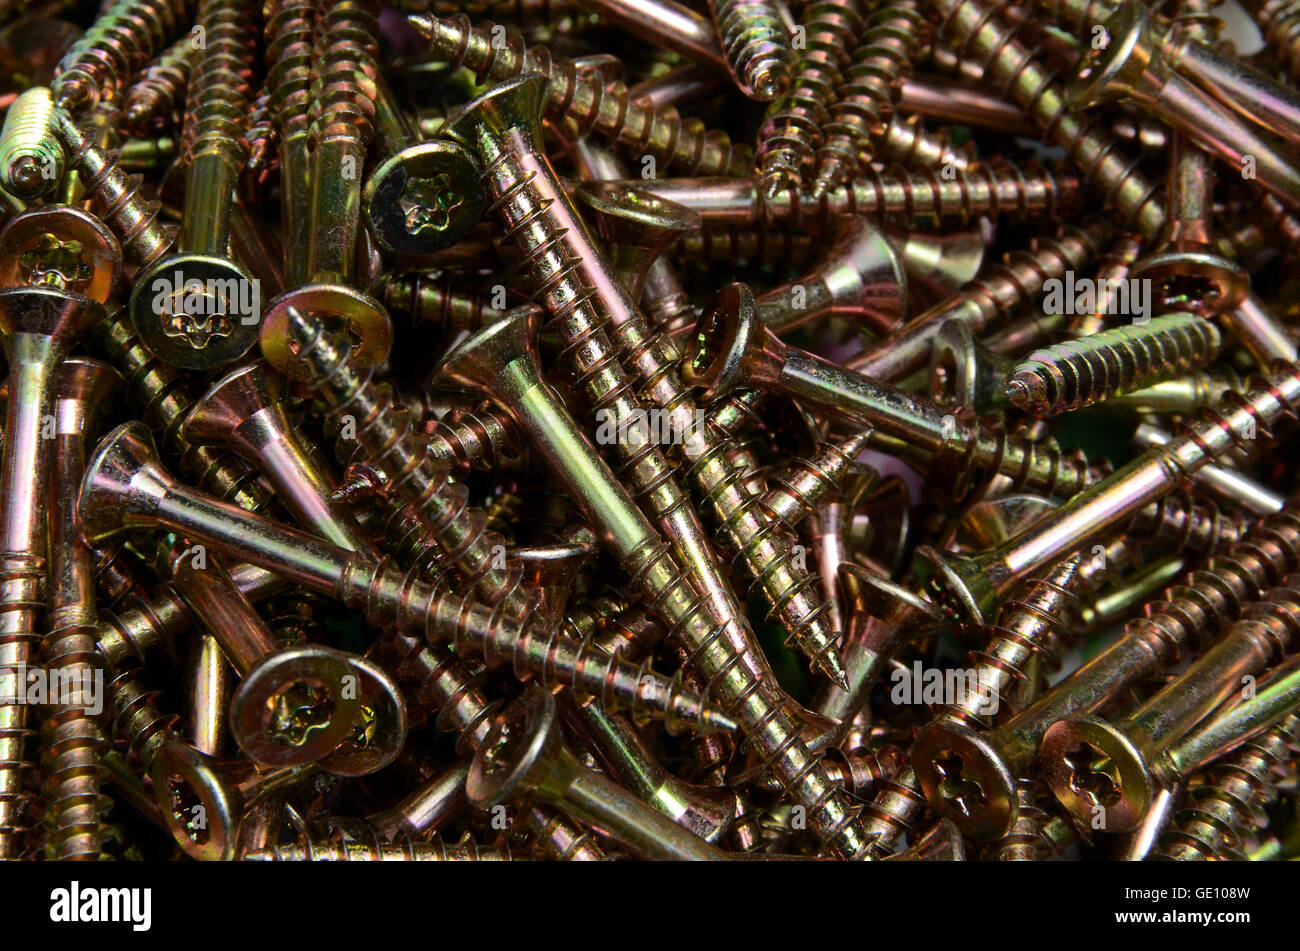 A whole lot of new Torx wood screws of same type - or is there an intruder? - Stock Image